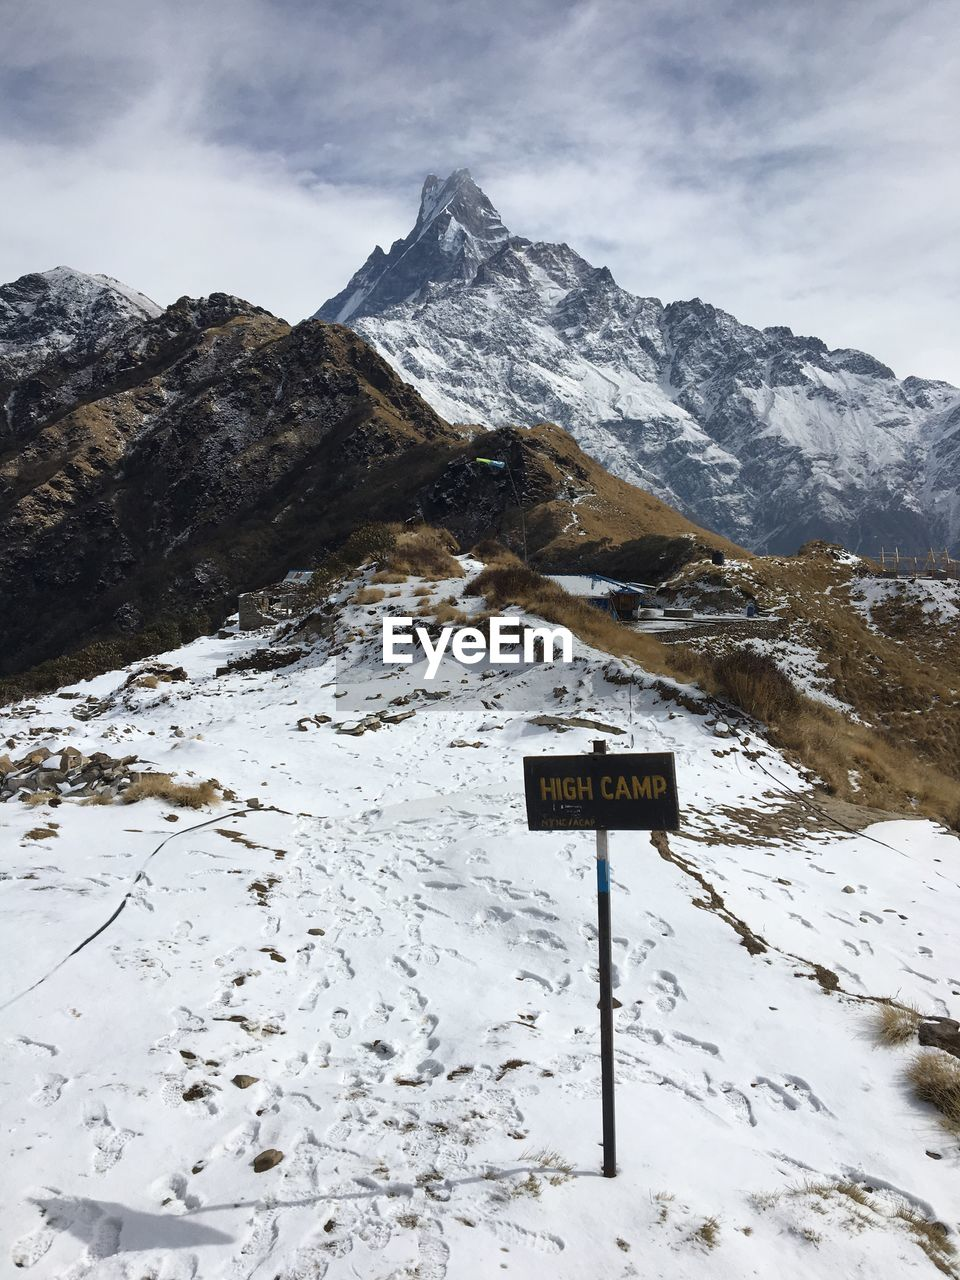 INFORMATION SIGN ON SNOW COVERED MOUNTAIN